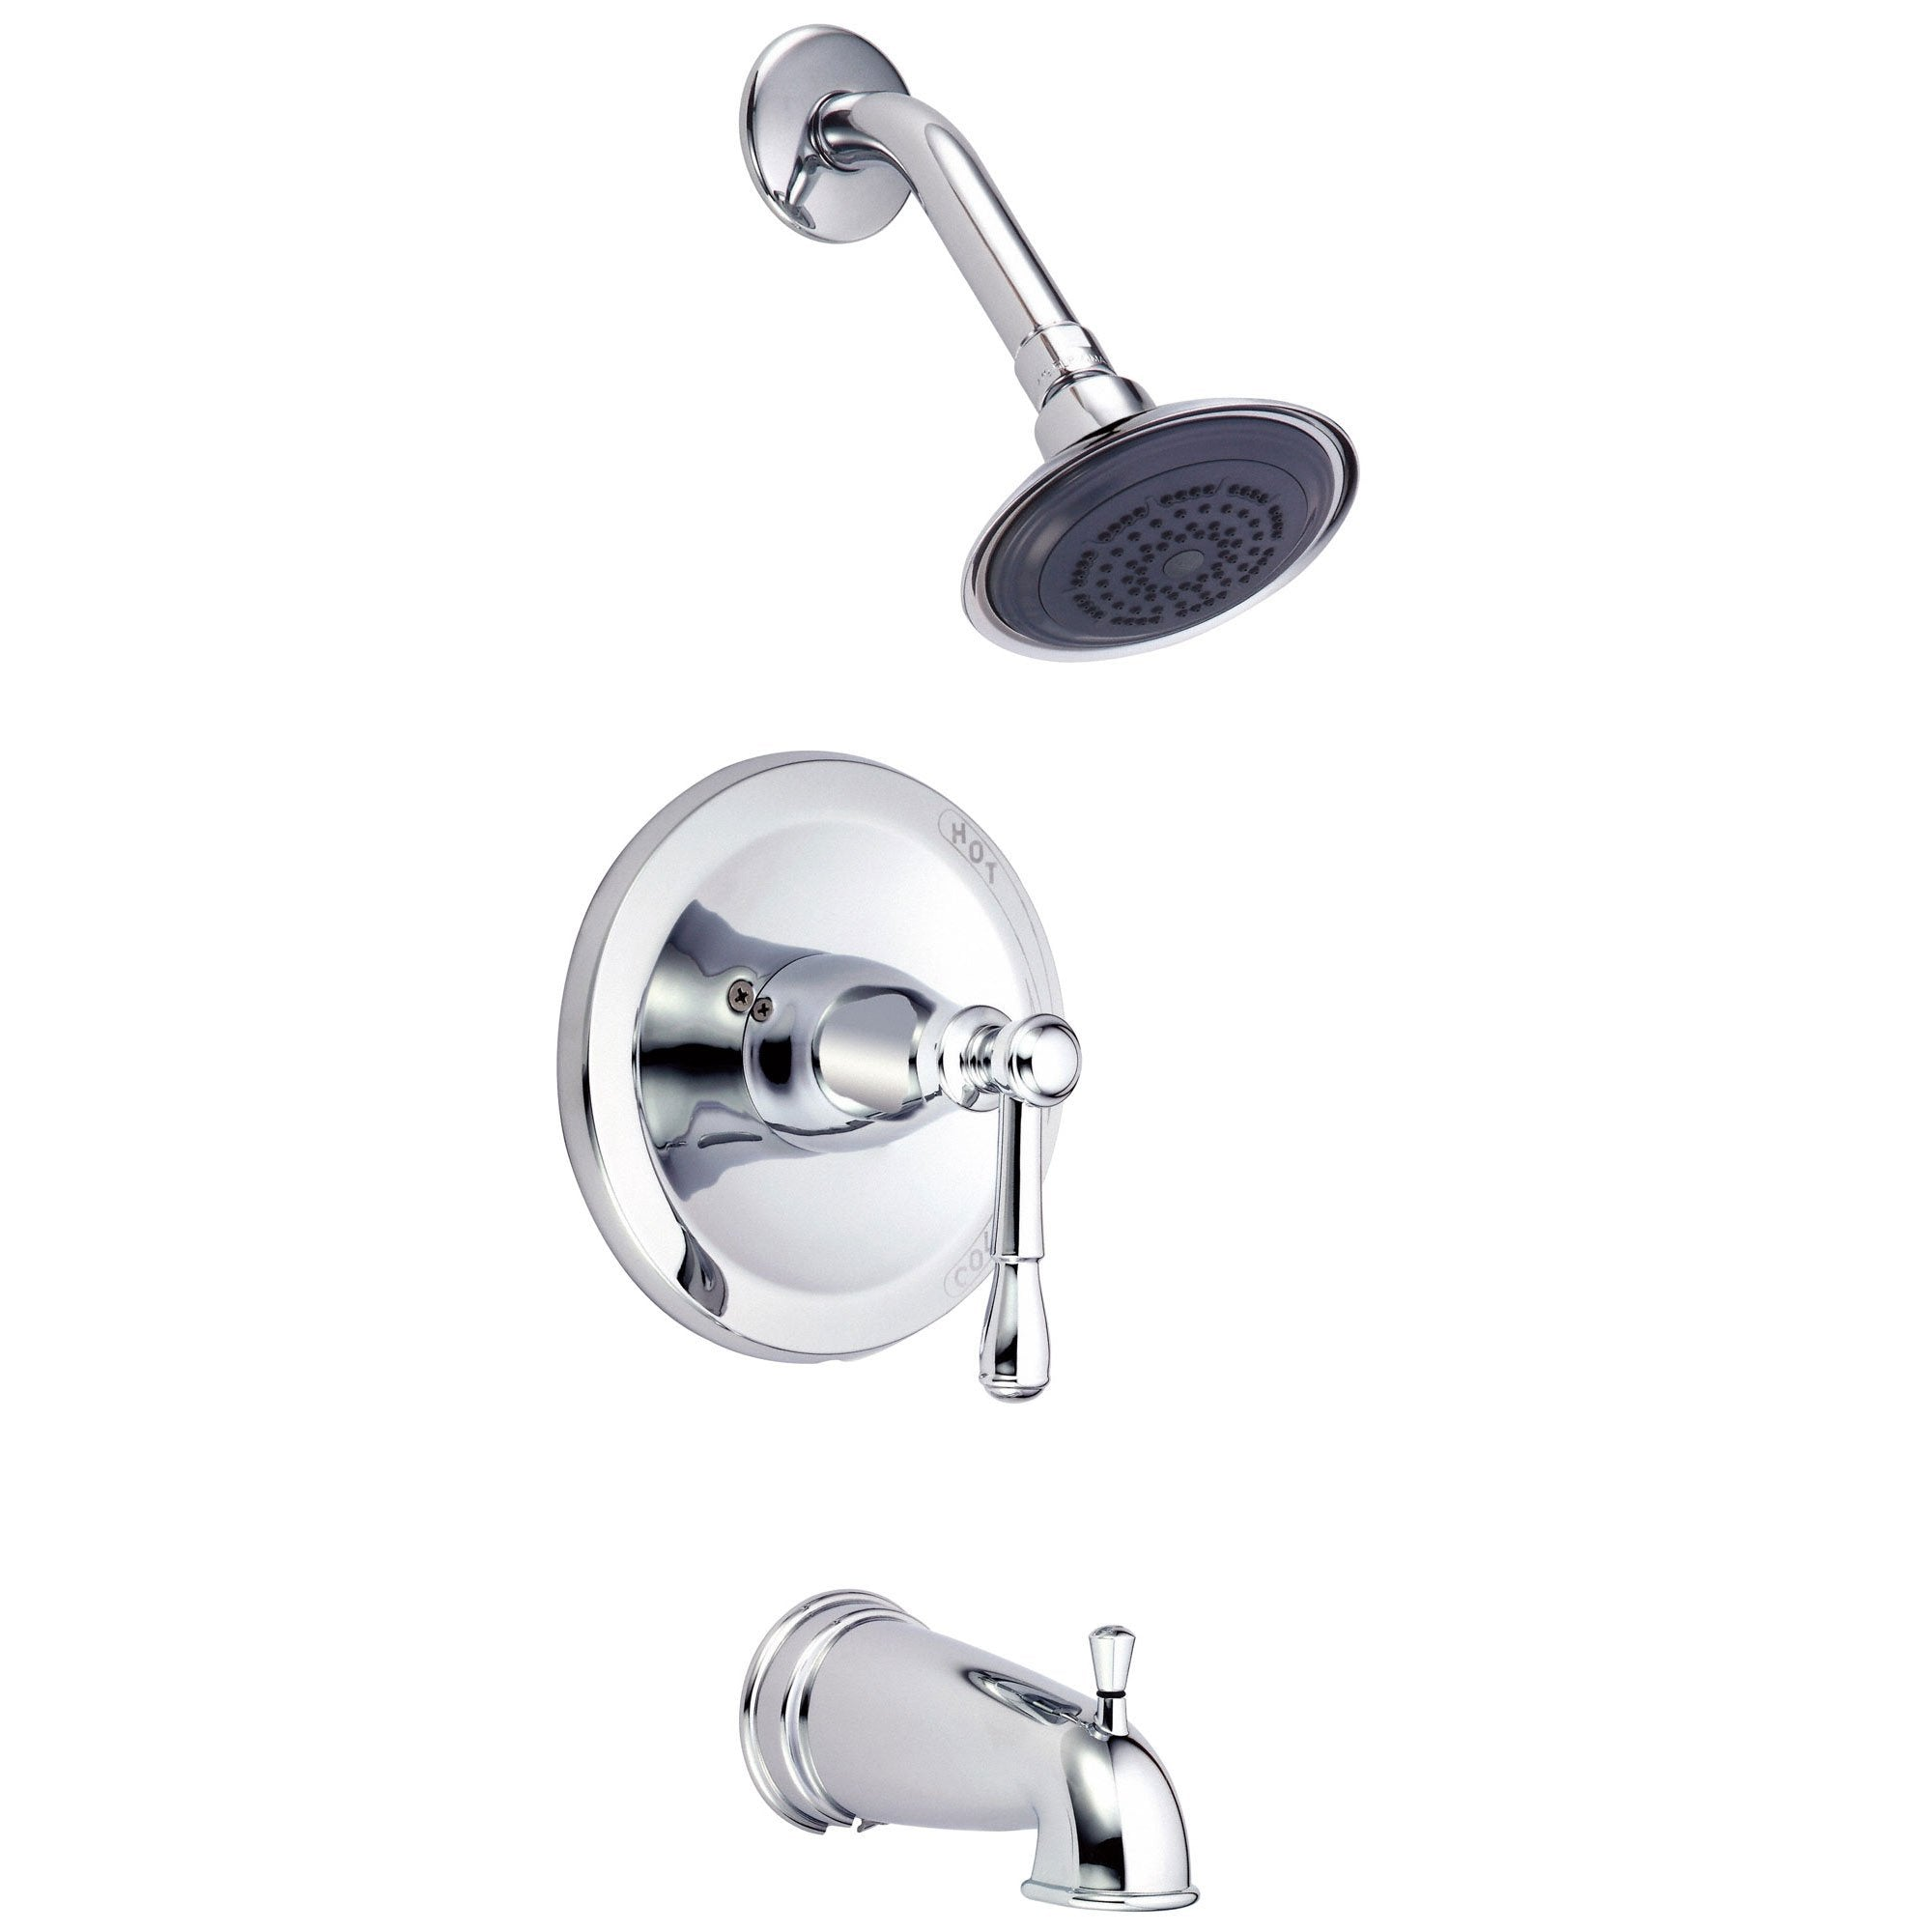 Danze Eastham Chrome Single Handle Tub and Shower Combination Faucet INCLUDES Rough-in Valve